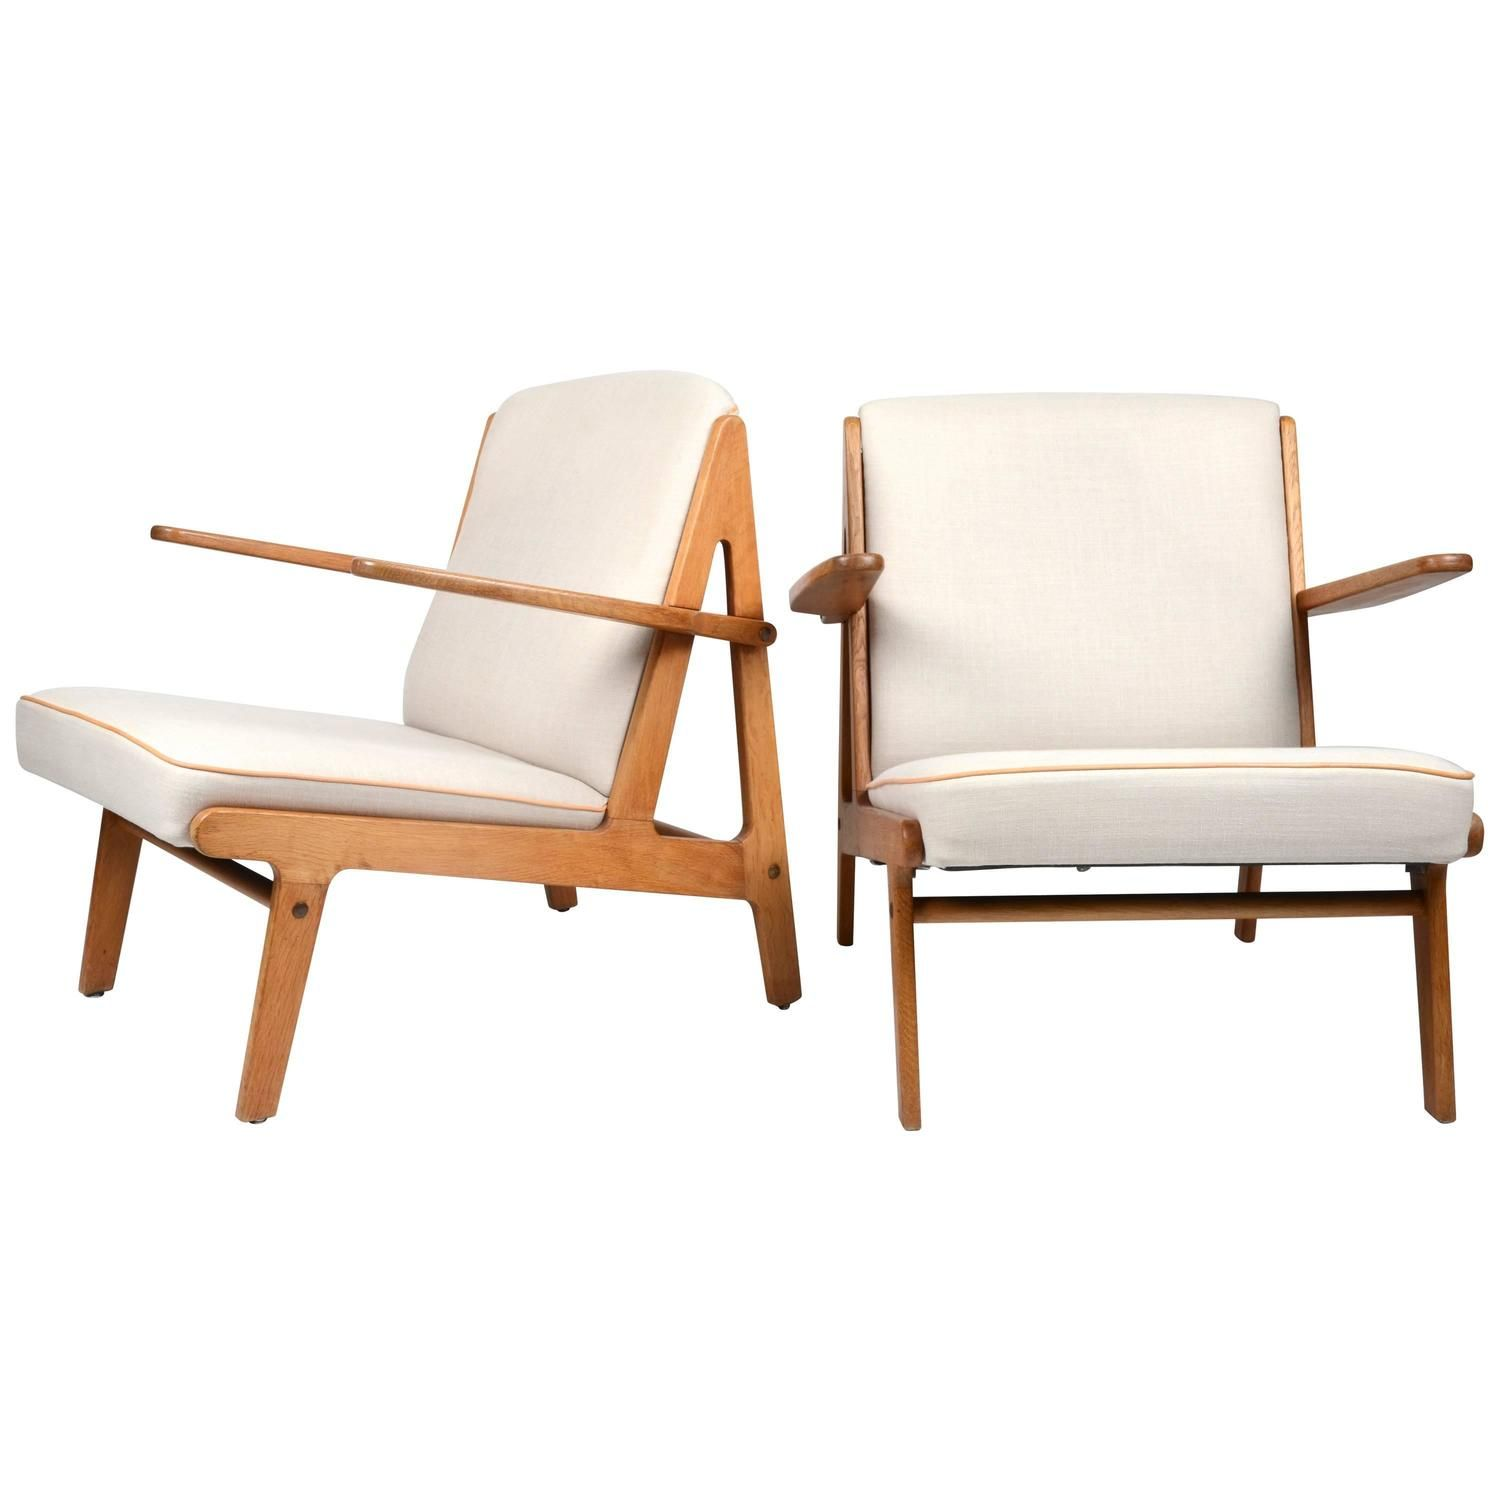 Pair of Easy Chairs, Børge Mogensen for Fredericia Stolefabrik, 1951 1